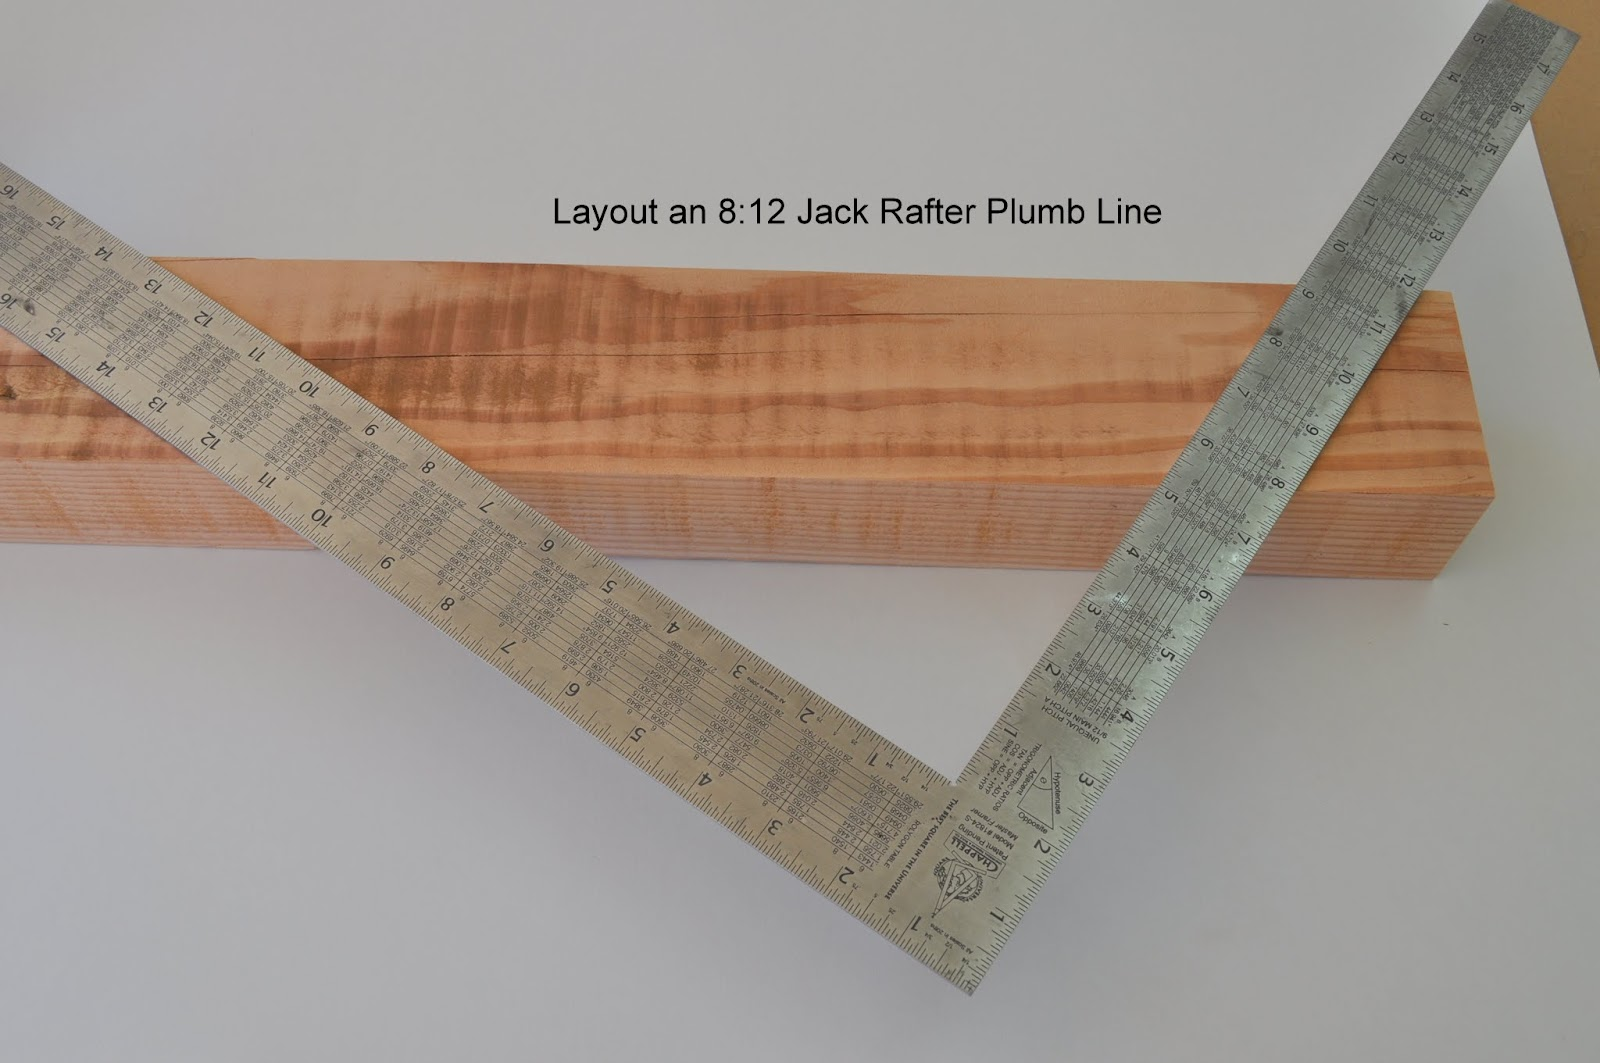 Roof Framing Geometry How To Layout Jack Rafter Side Cut